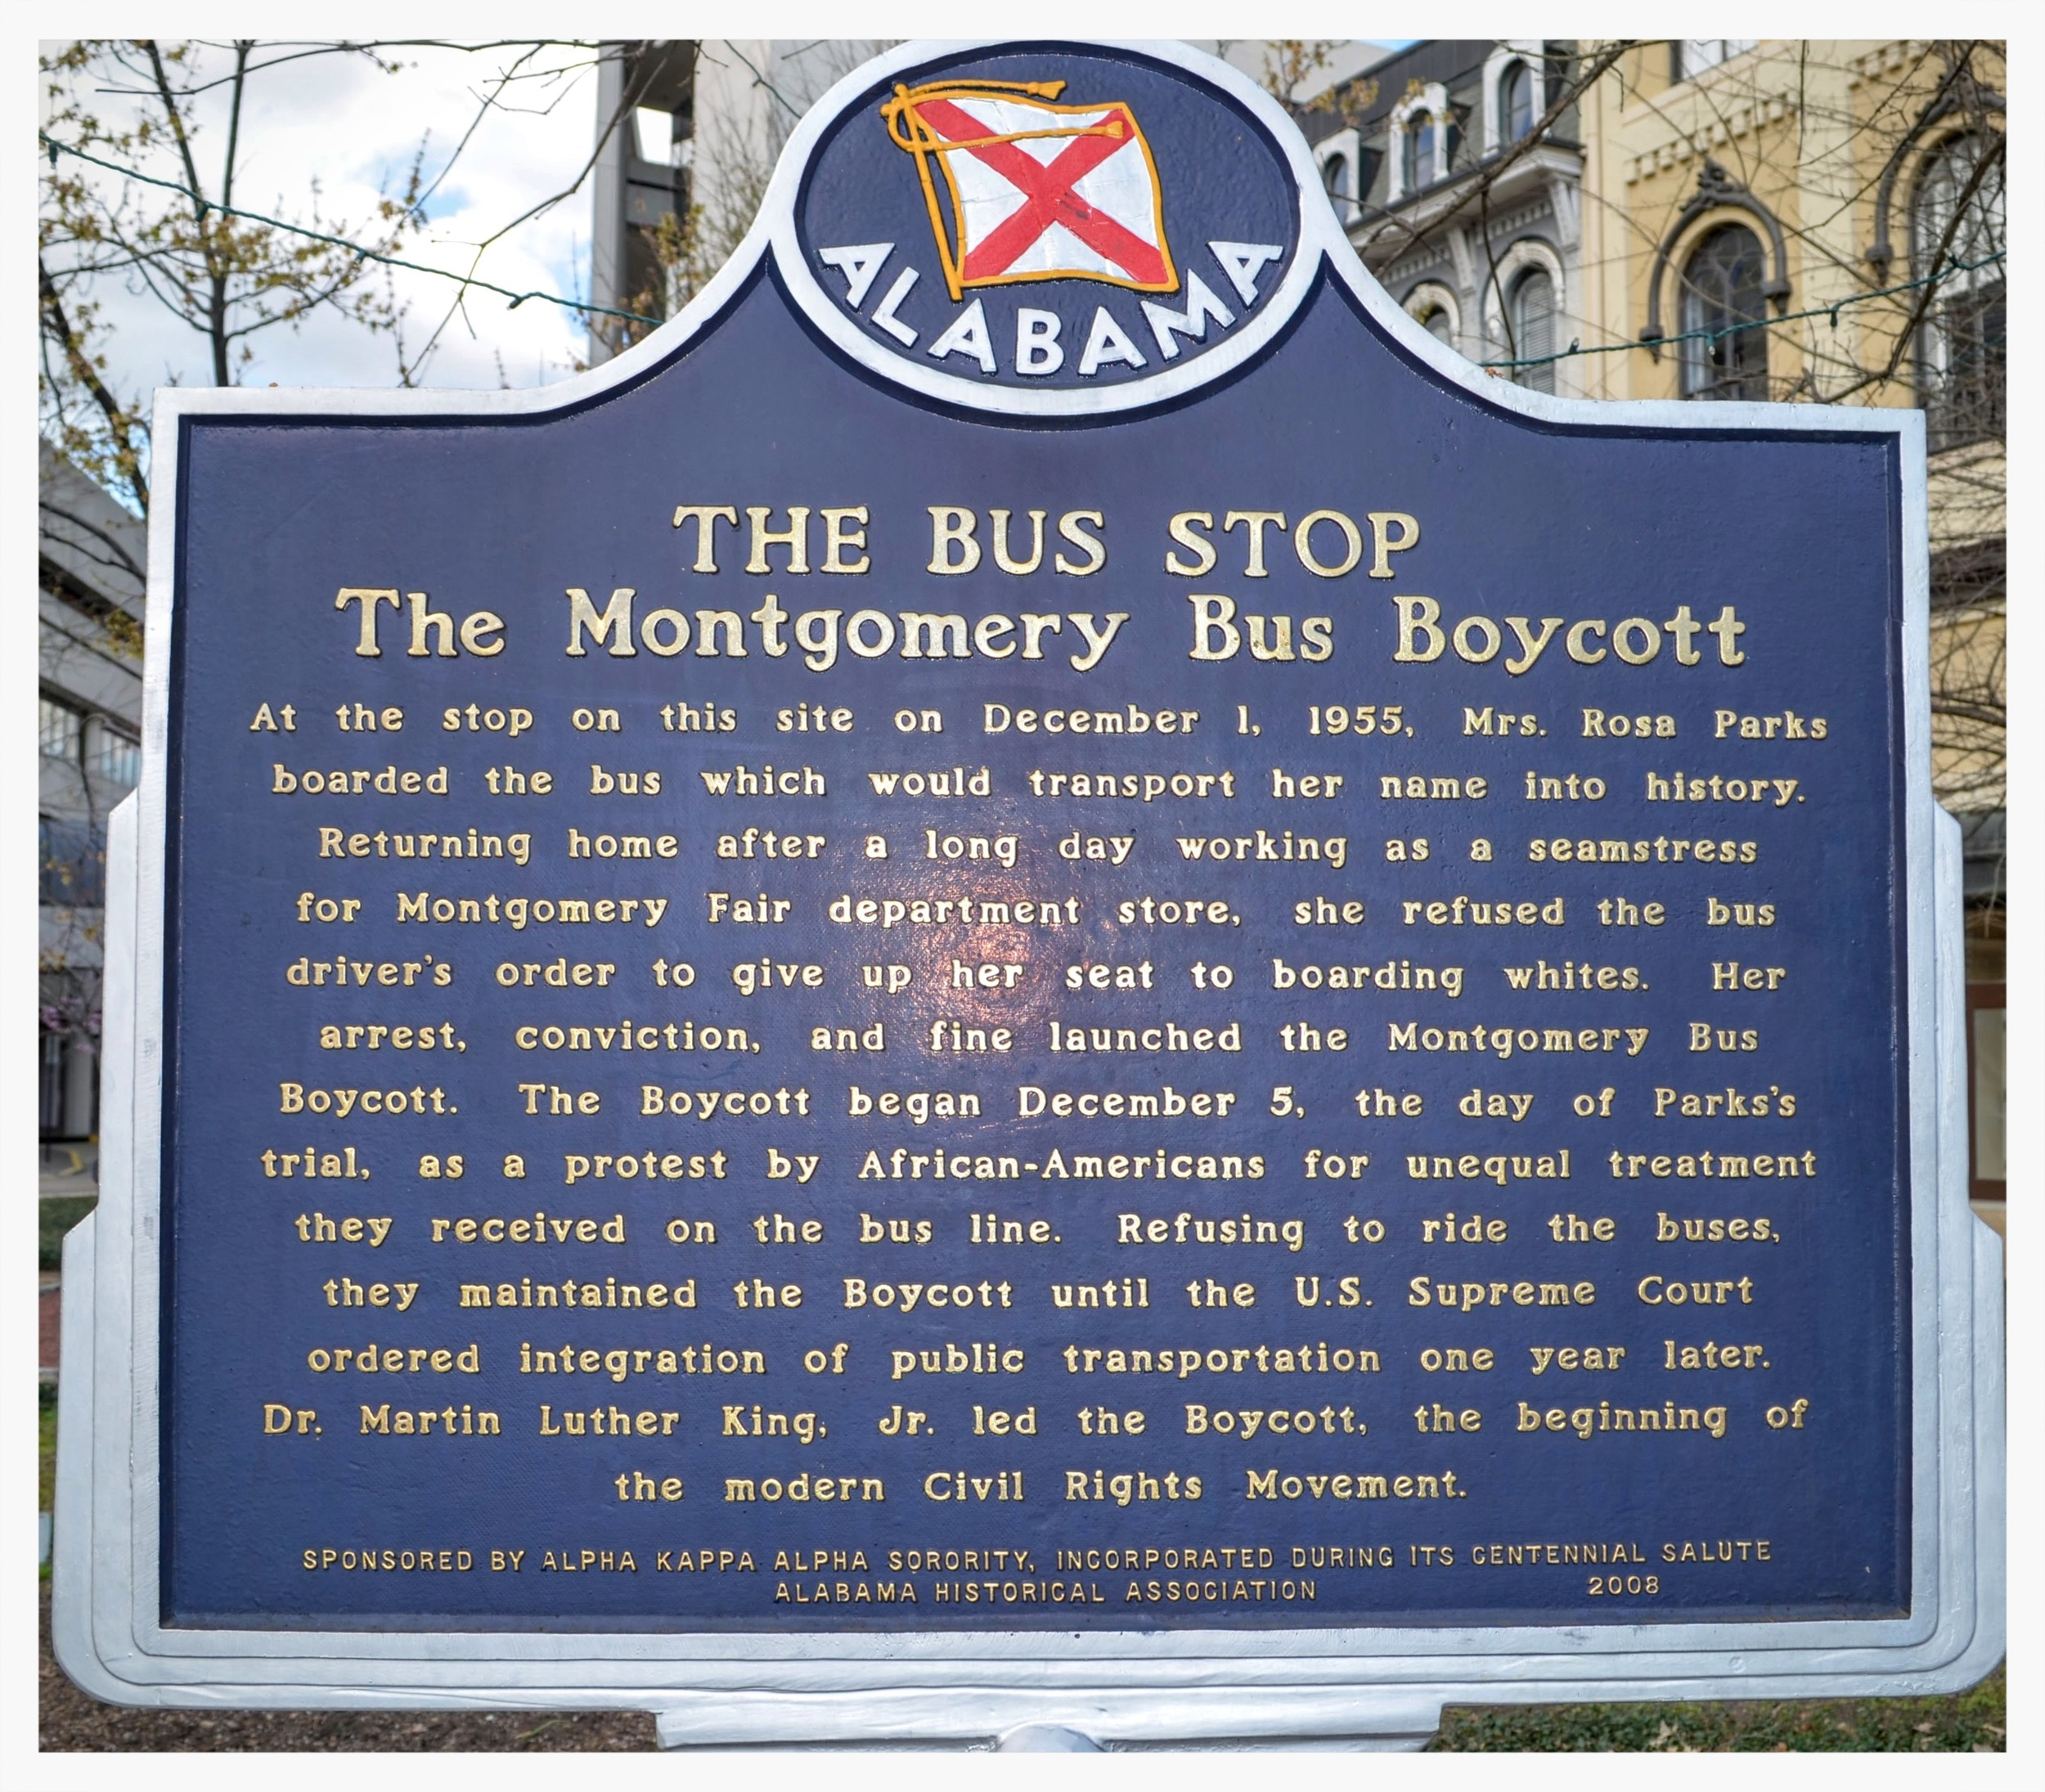 The Bus Stop historical marker, Court Square, Montgomery, Alabama